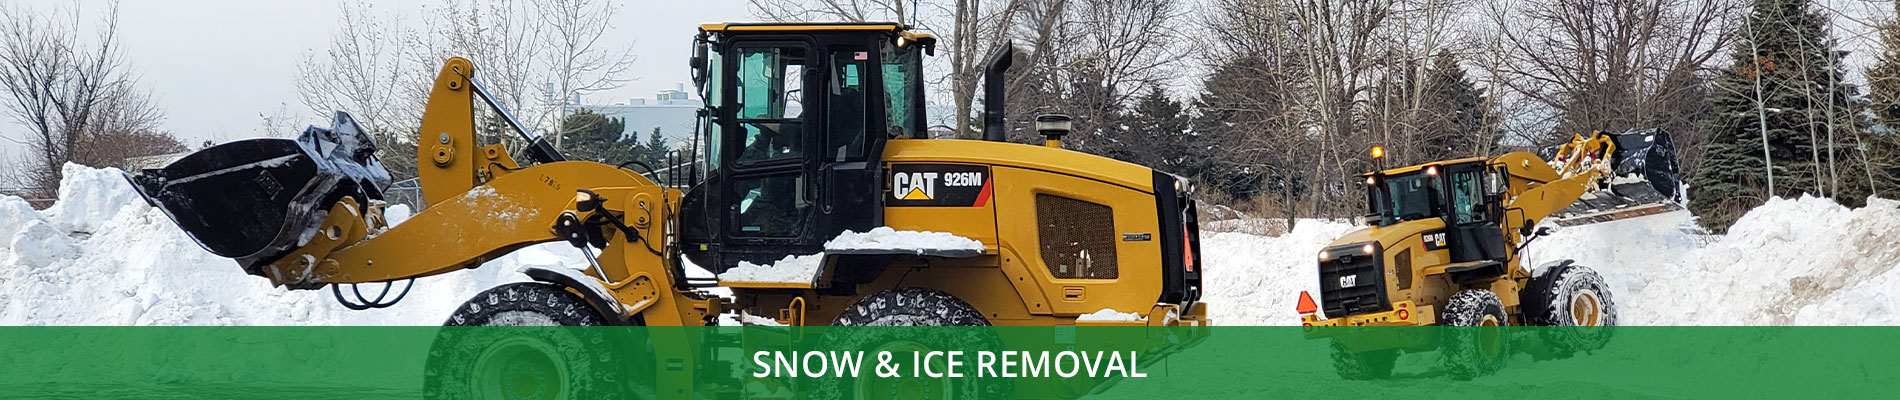 snow-and-ice-removal-cb-services.jpg